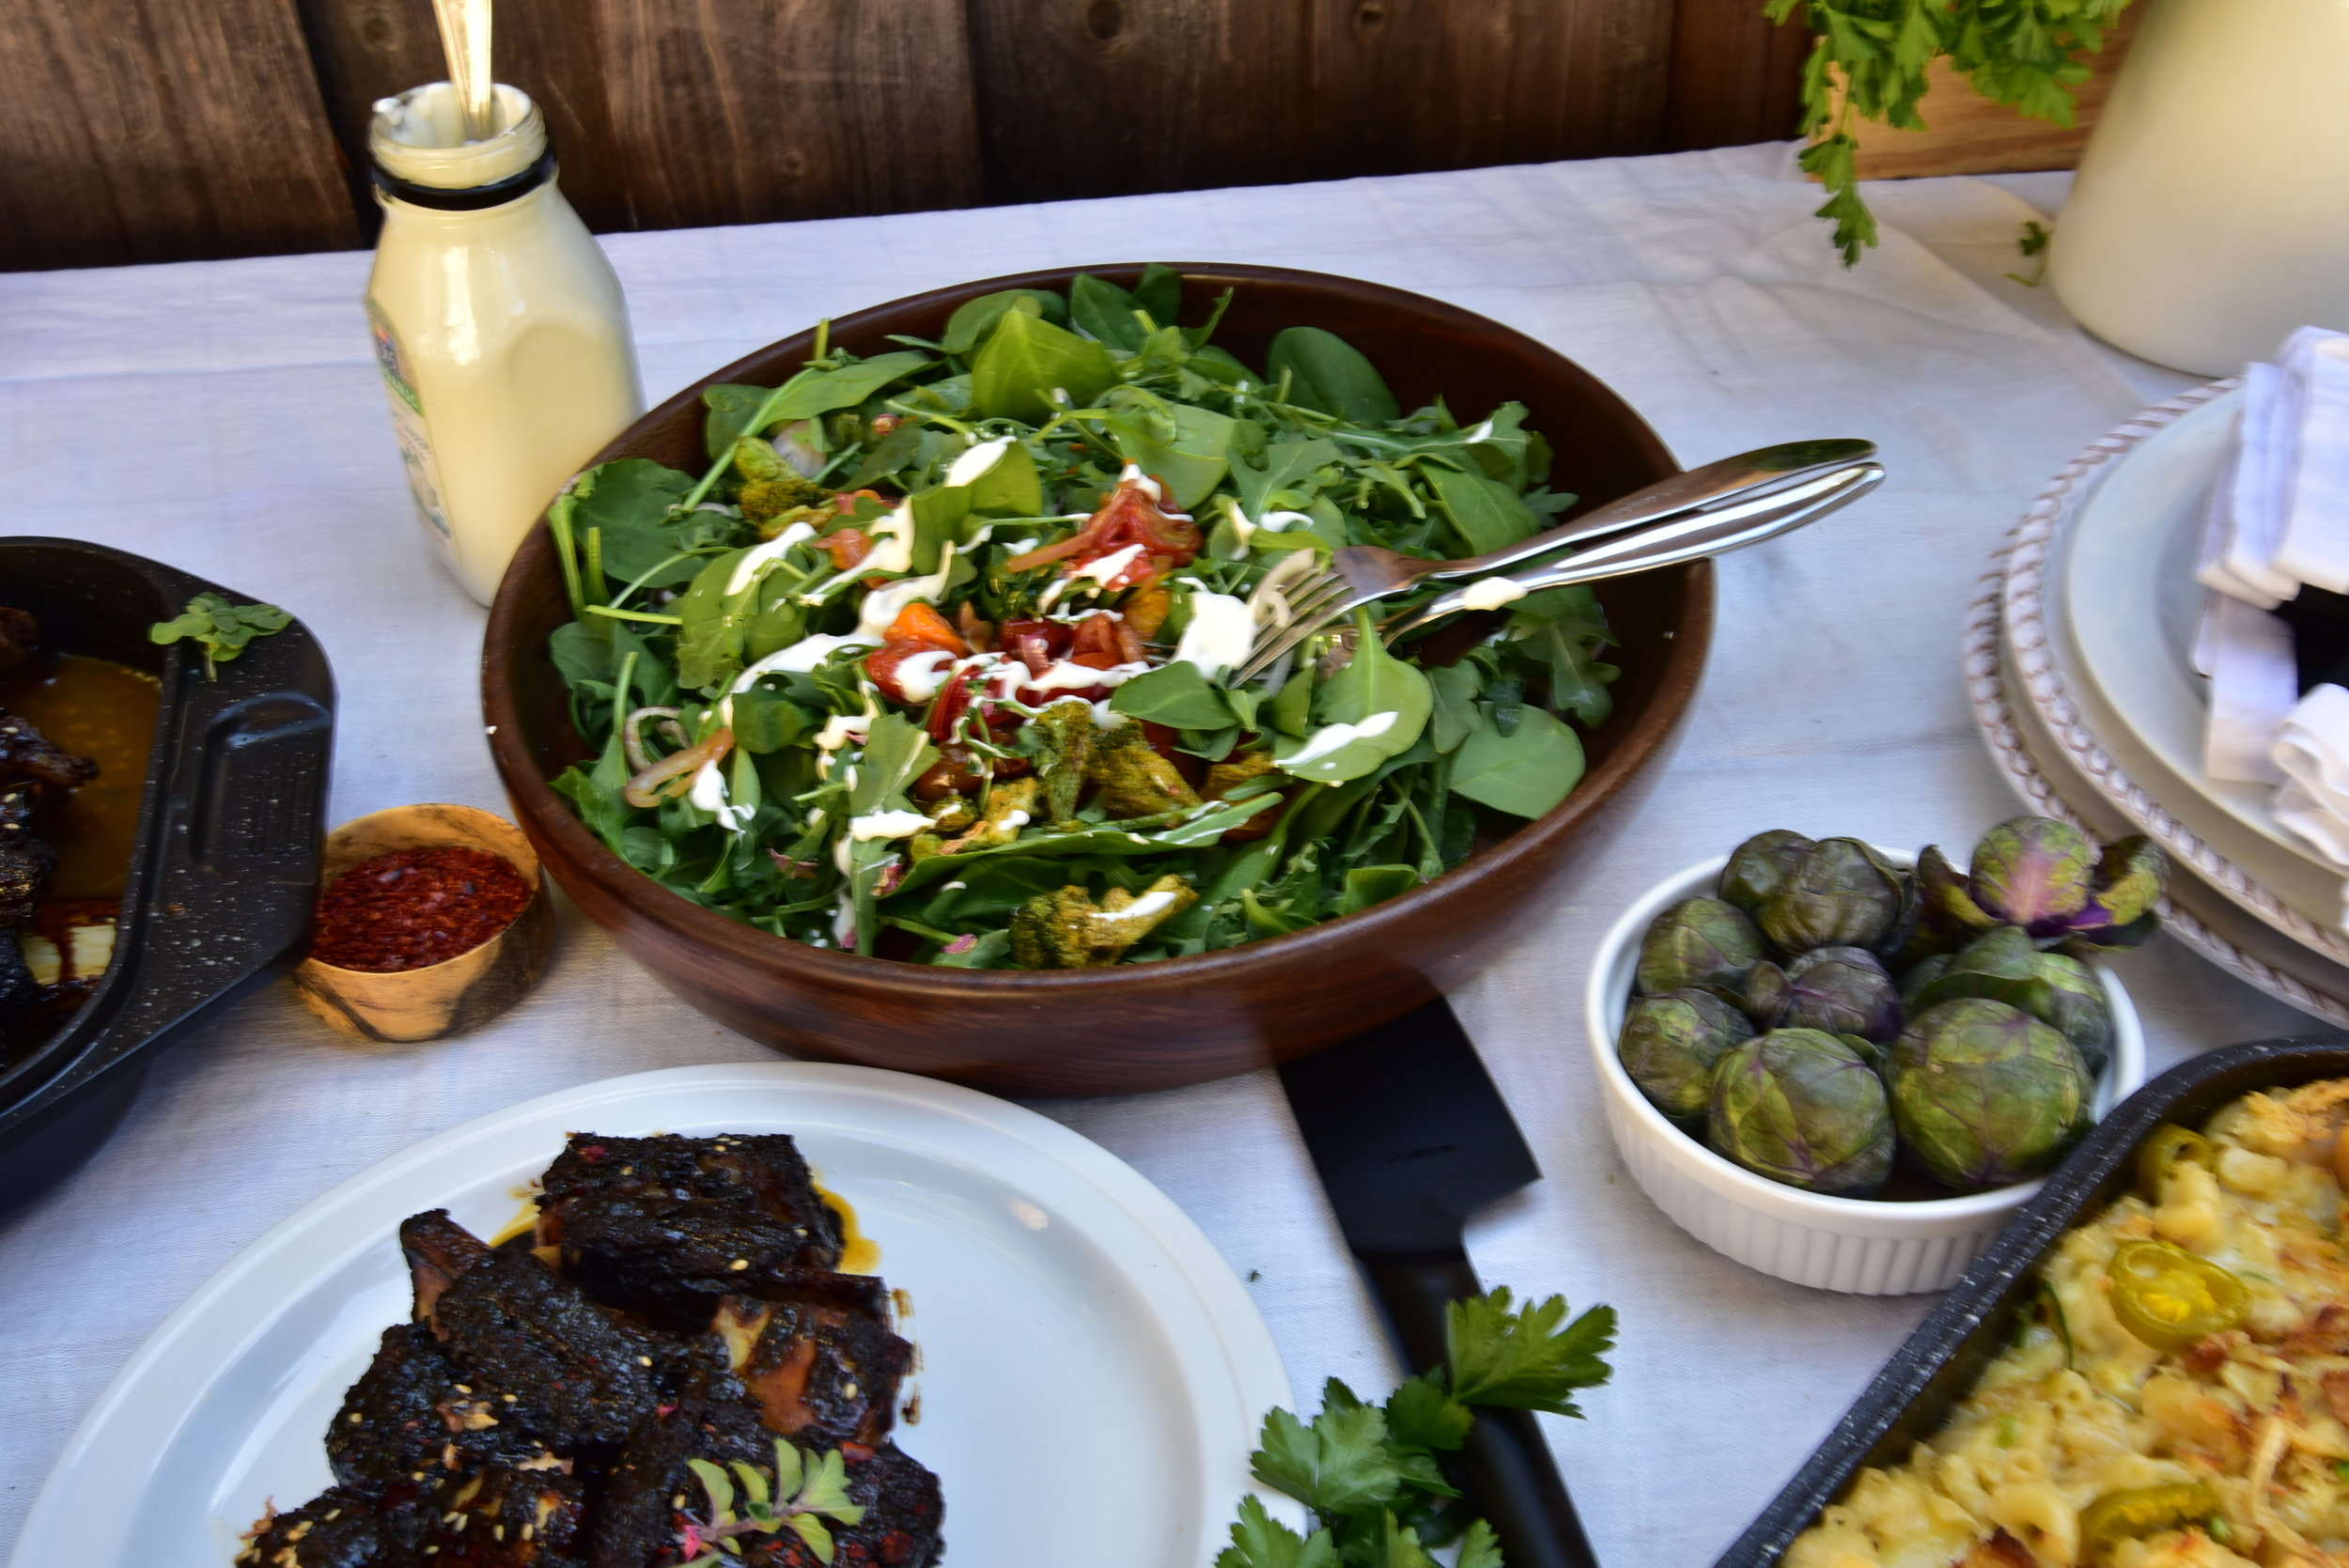 A terrific salad, or slices of radish dredged in salt, can contrast the rich rib flavor. Just as the color red looks redder next to the color blue, your ribs can taste even more stinking delicious.